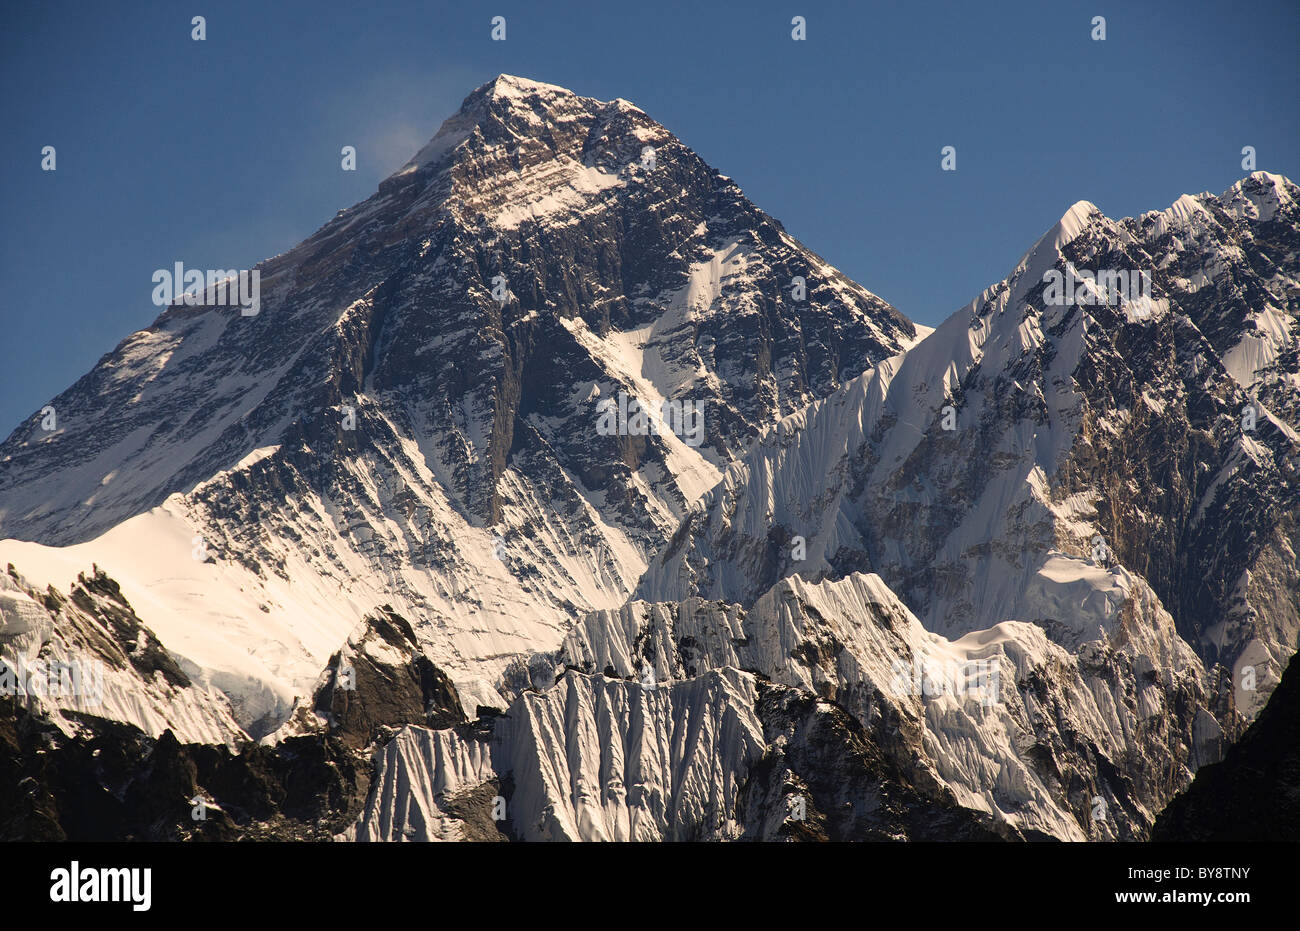 closeup of Mount Everest taken from Gokyo Ri in the Solo Khumbu region of Nepal - Stock Image